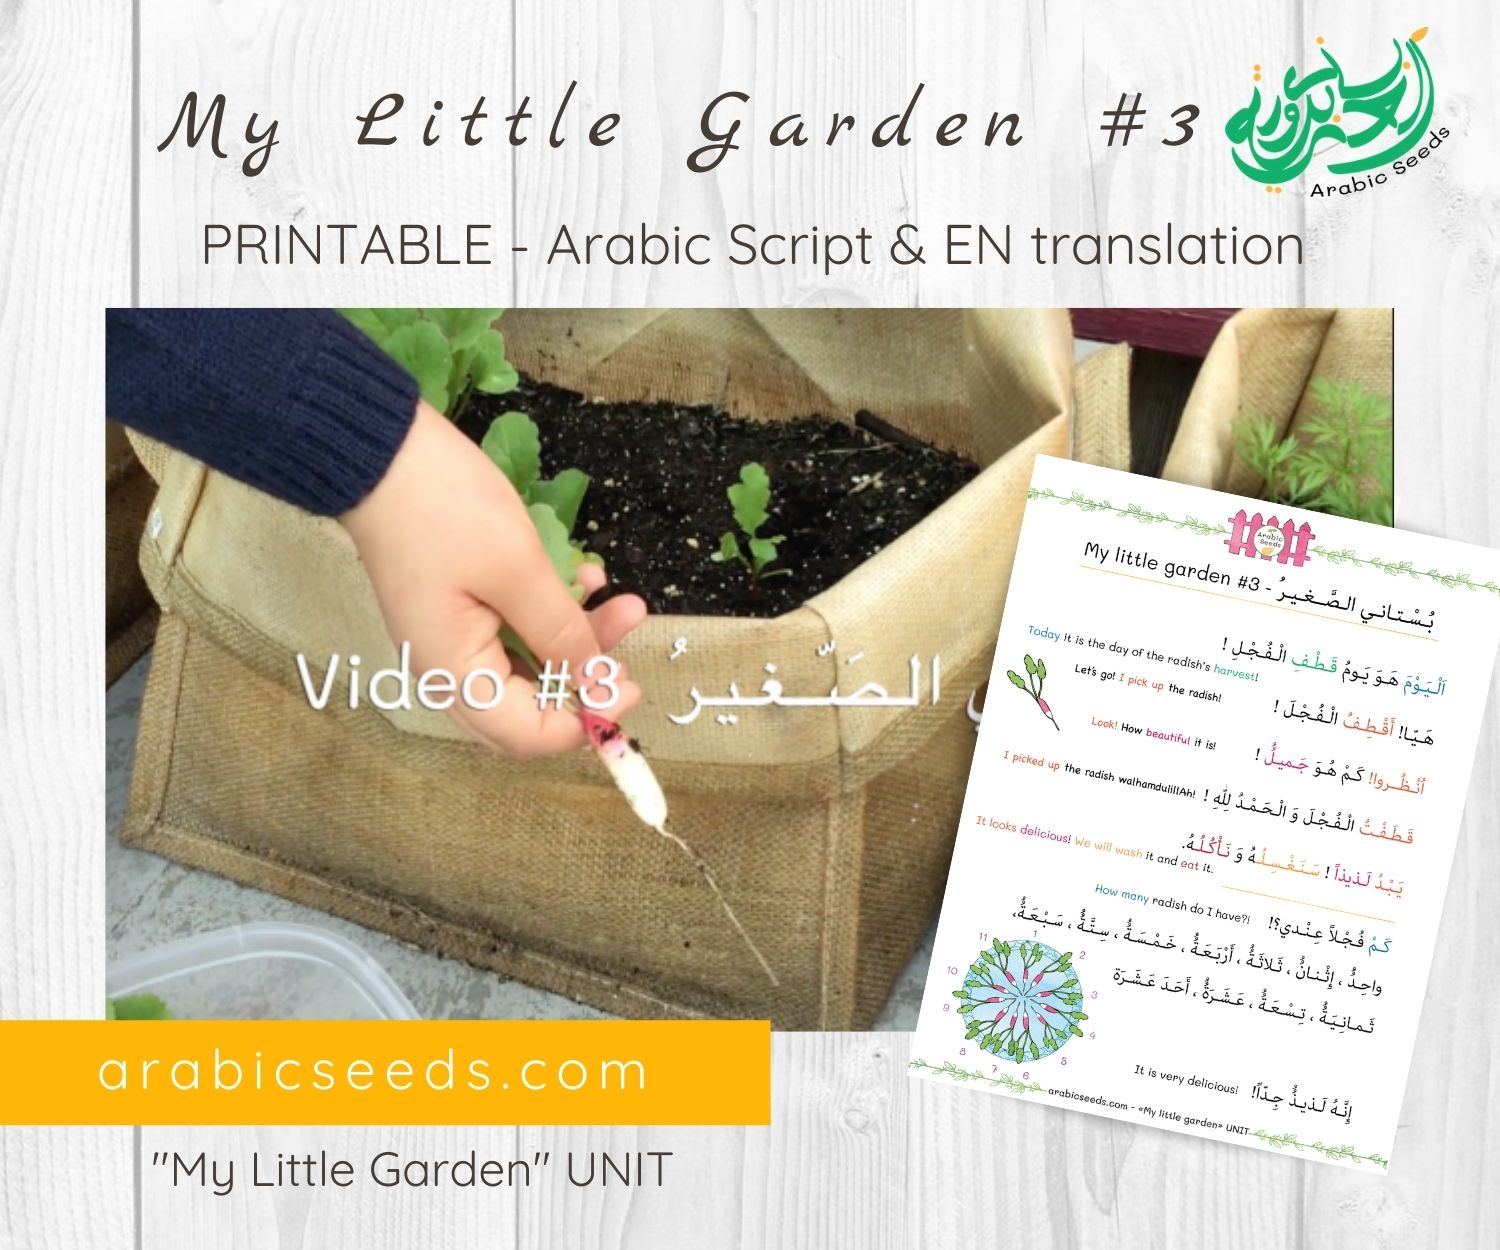 My Little Garden 3 - Arabic video for kids printable Arabic Seeds unit